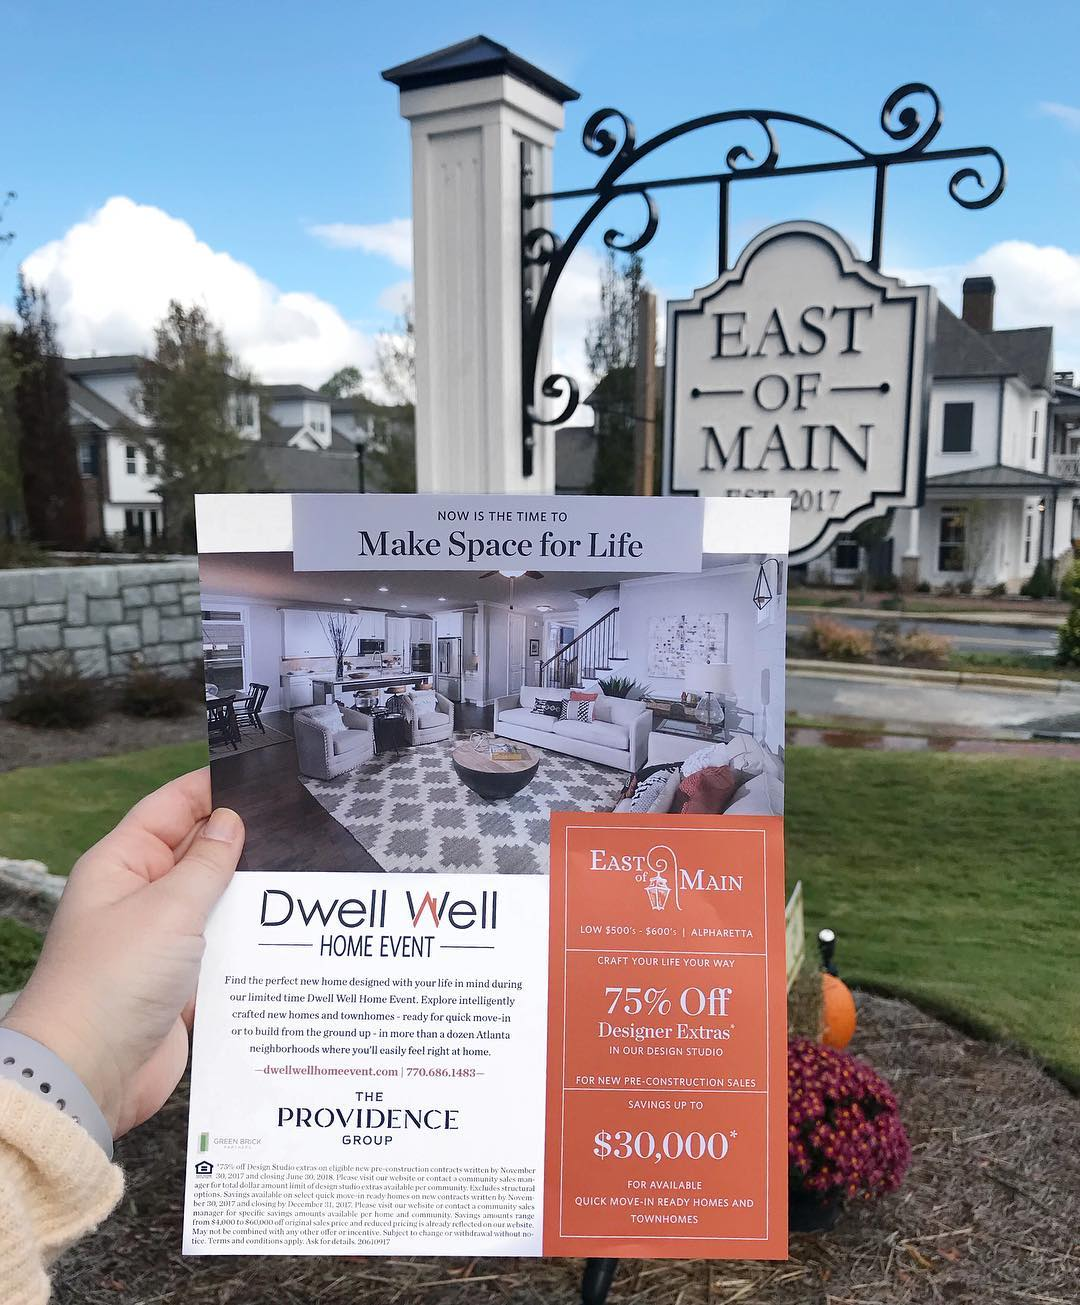 Dwell Well Home Event | Branding and Marketing Campaign by Clementine Creative Agency | Marietta, GA